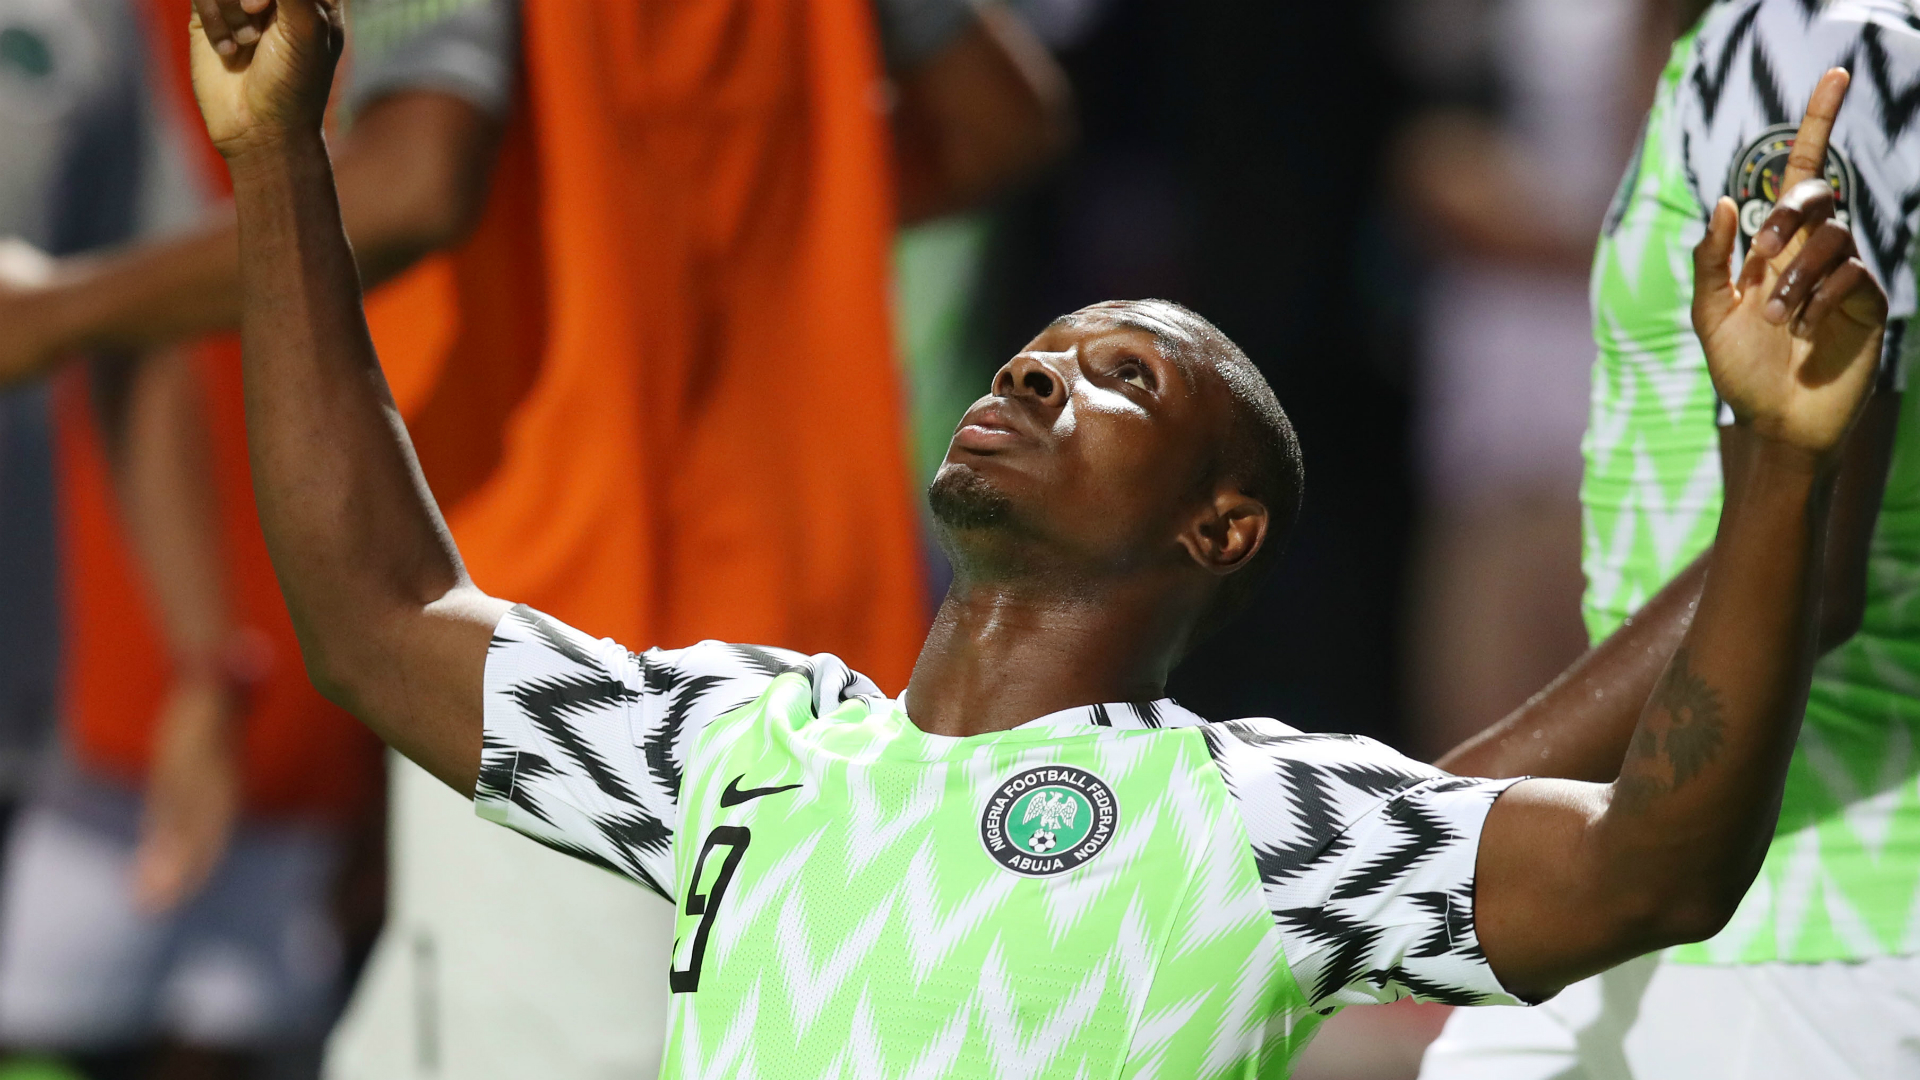 Afcon 2019: Nigeria's Odion Ighalo makes amends to punish Burundi ...